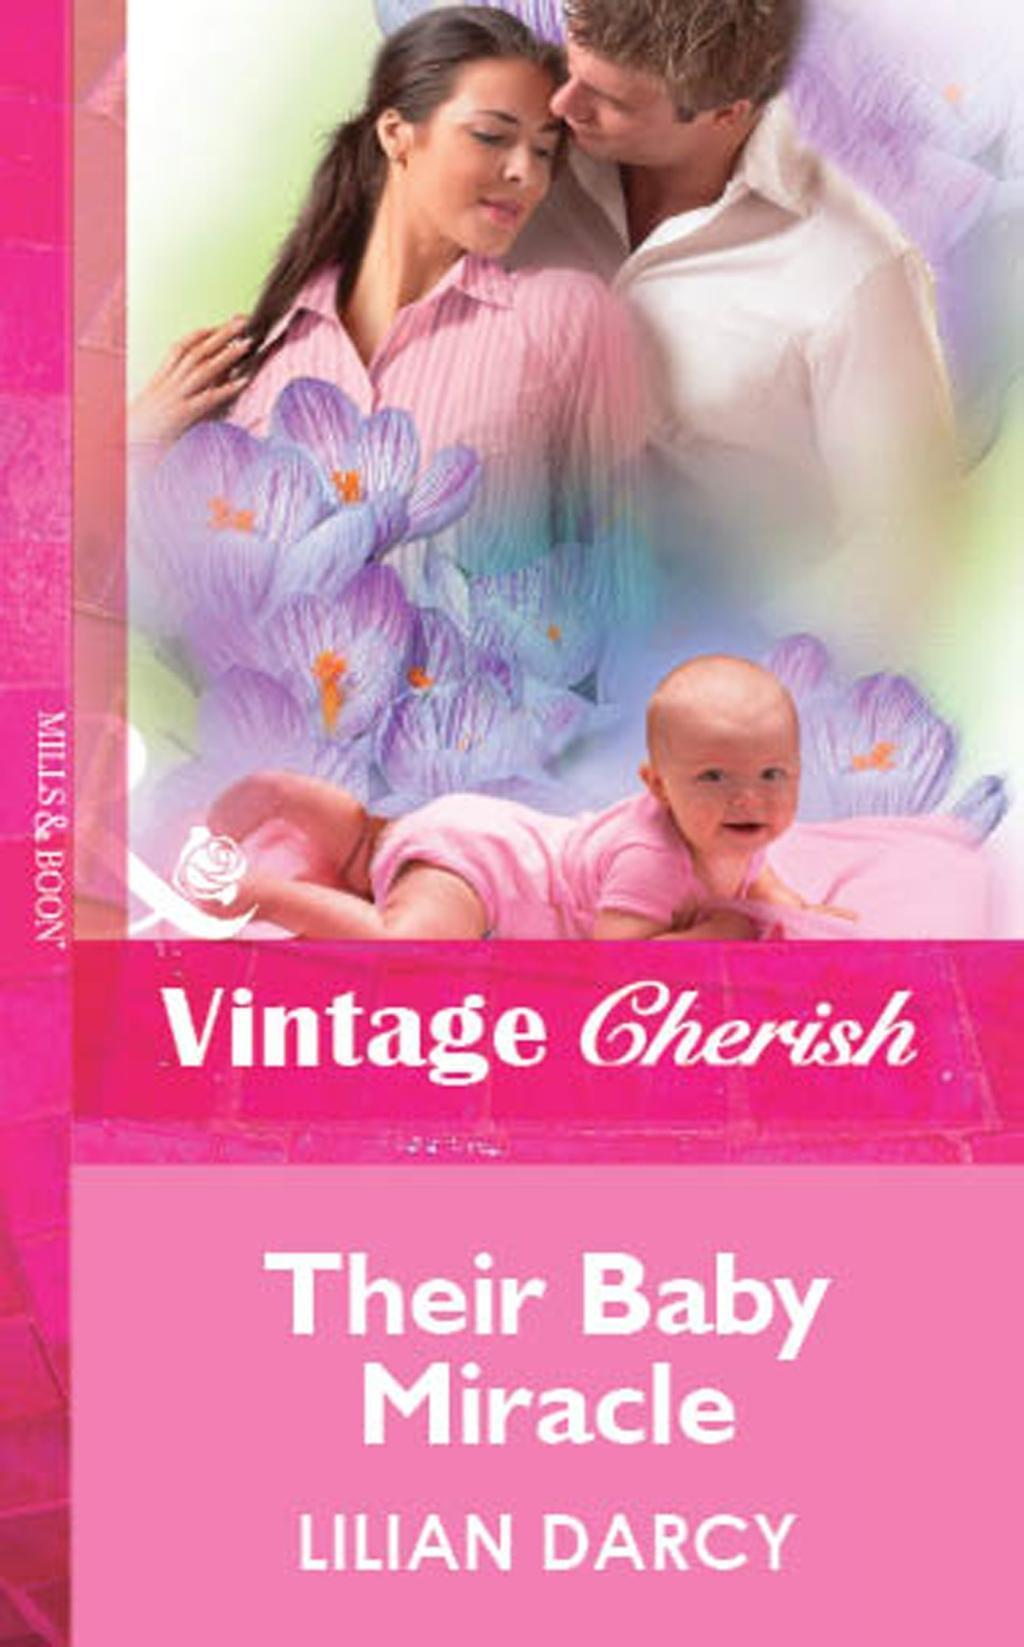 Their Baby Miracle (Mills & Boon Vintage Cherish)